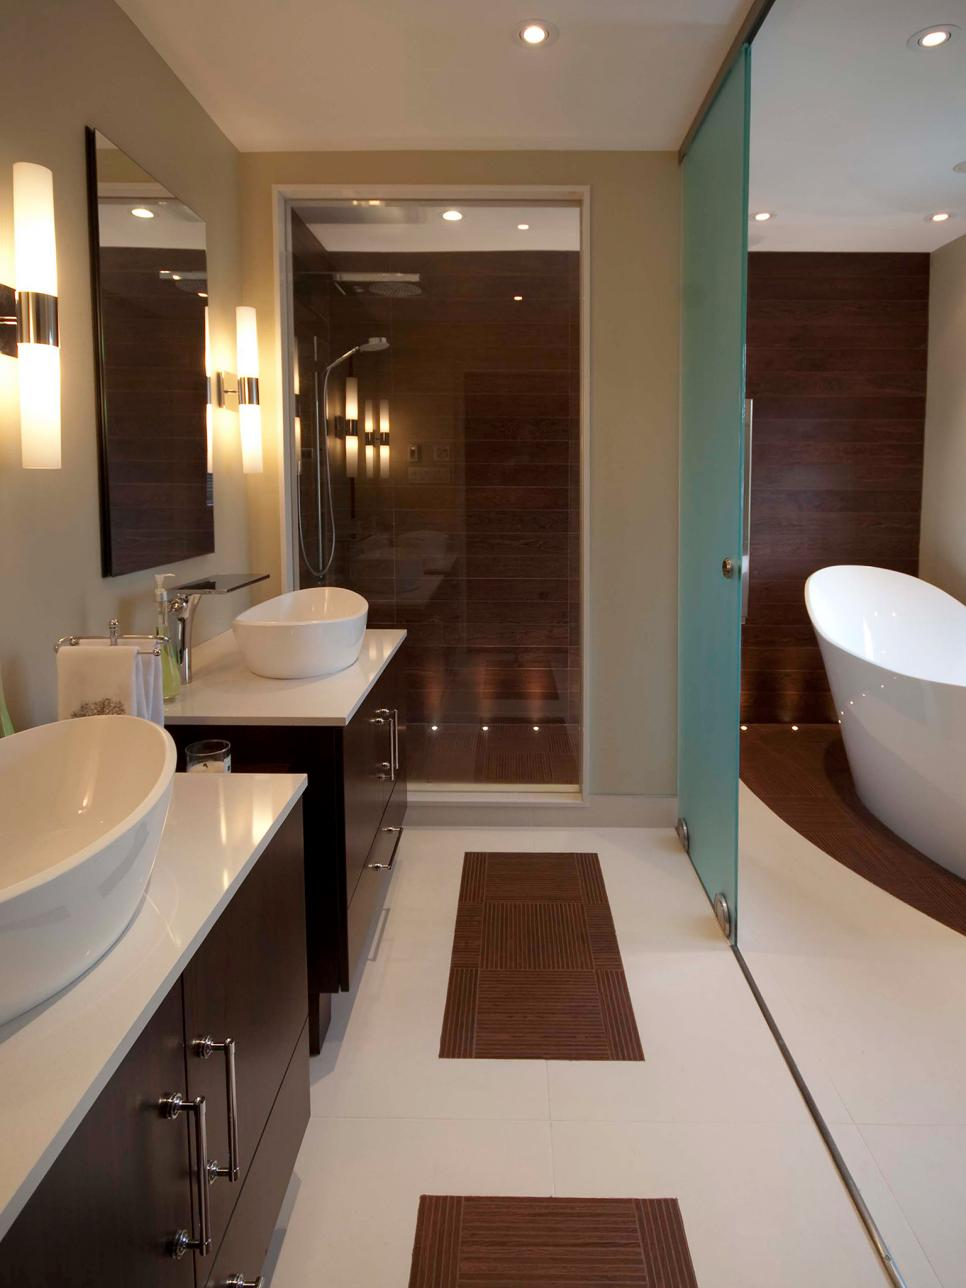 2017 - Bathroom designs for small spaces pictures ...